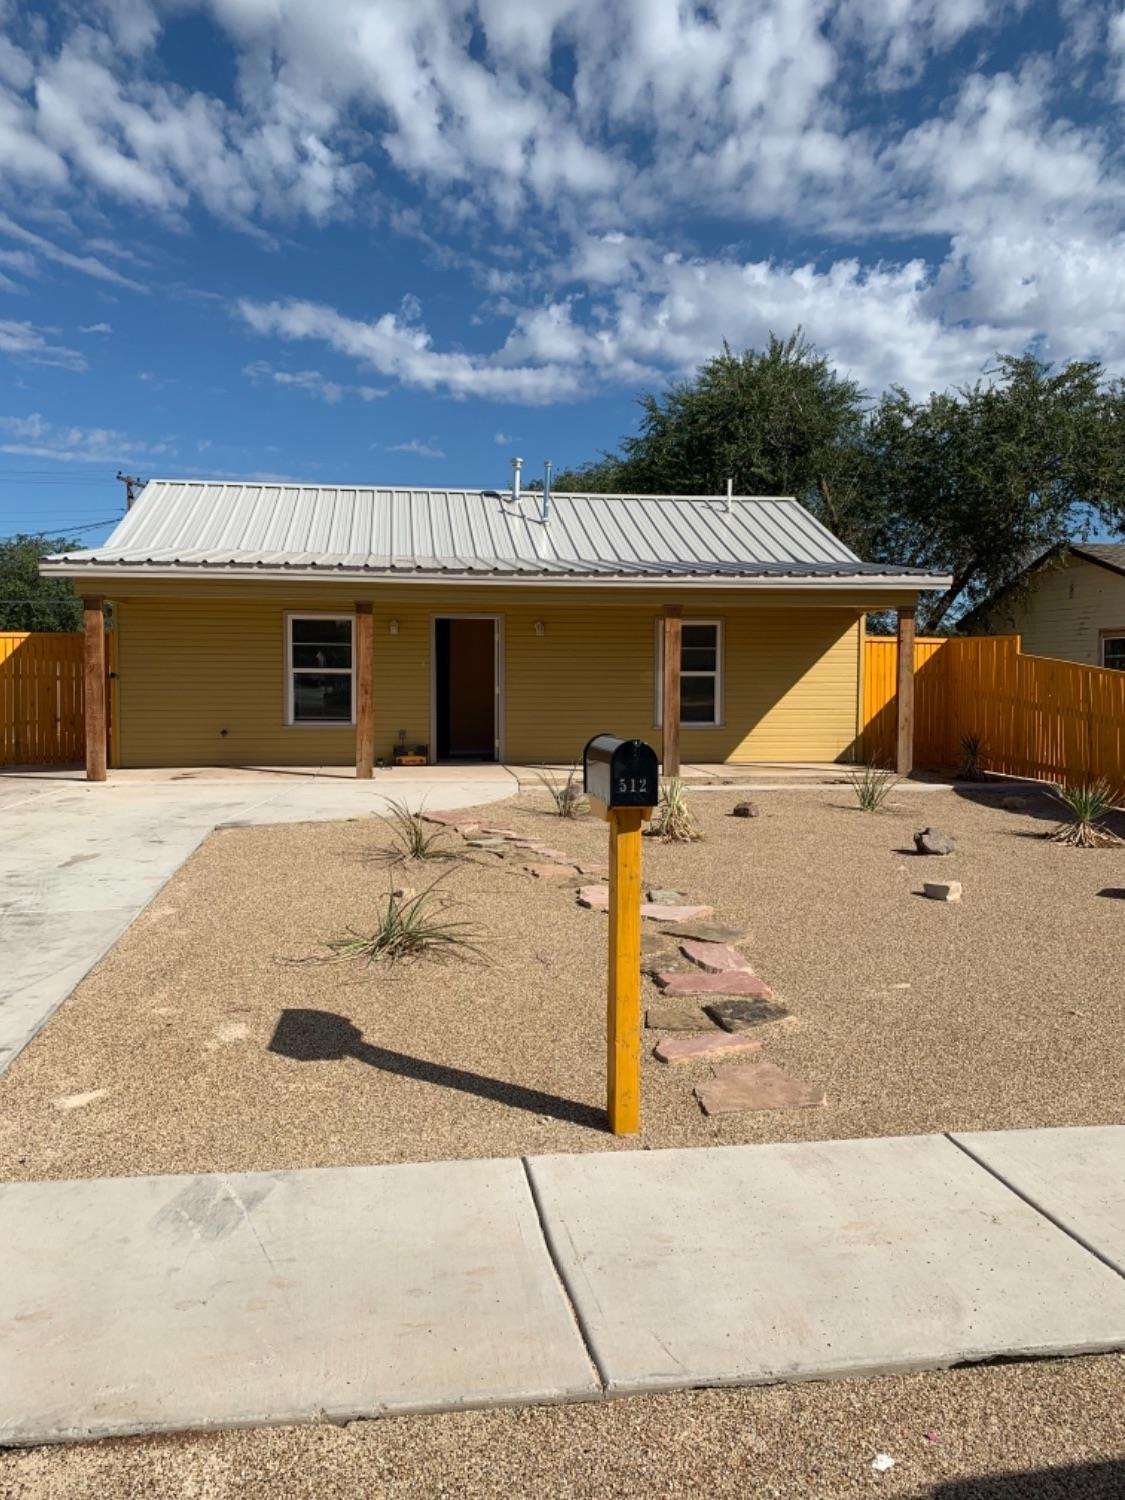 Wow! Take a look at this new build. That's right i said new. This house has an open floor plan, You will love the convenience of stained cement flooring. It has high vaulted ceilings, custom kitchen cabinets. Your insurance will love the new metal roof. The front yard is a zero scape. Enough concrete to accommodate pull behind trailers.There is too much to try to list. come take a look